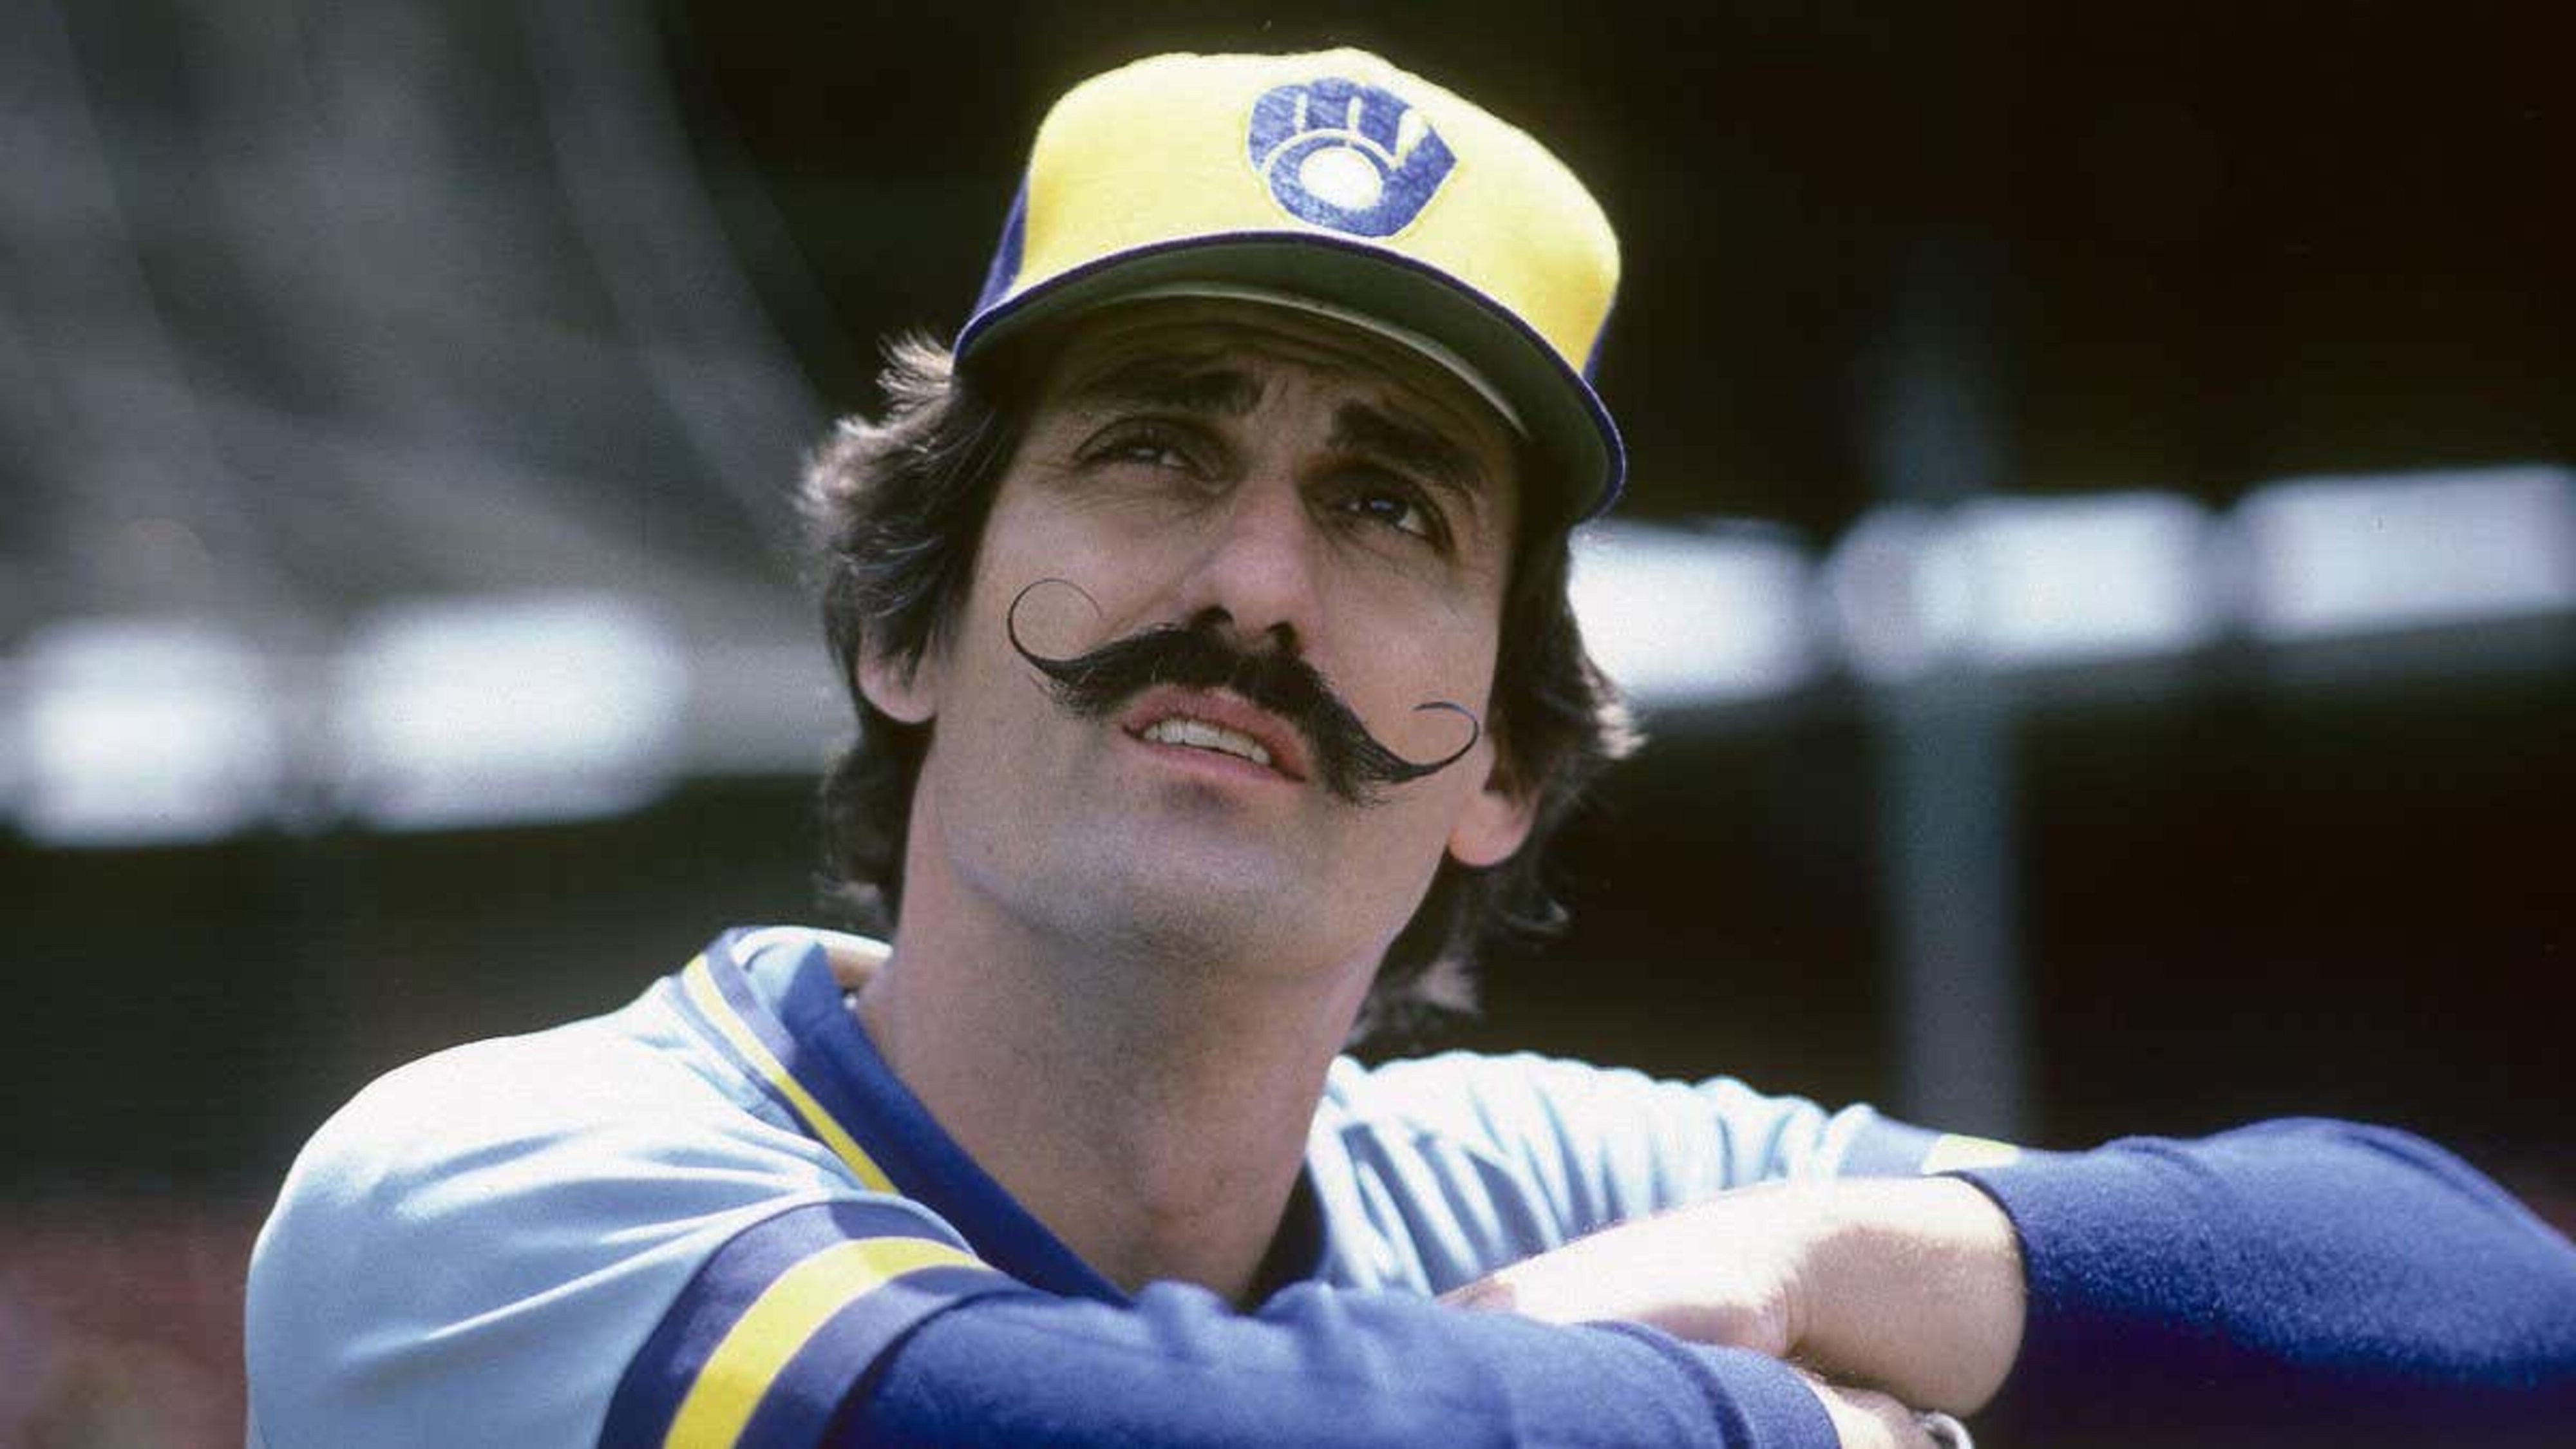 Baseball handlebar mustache for trendy look.